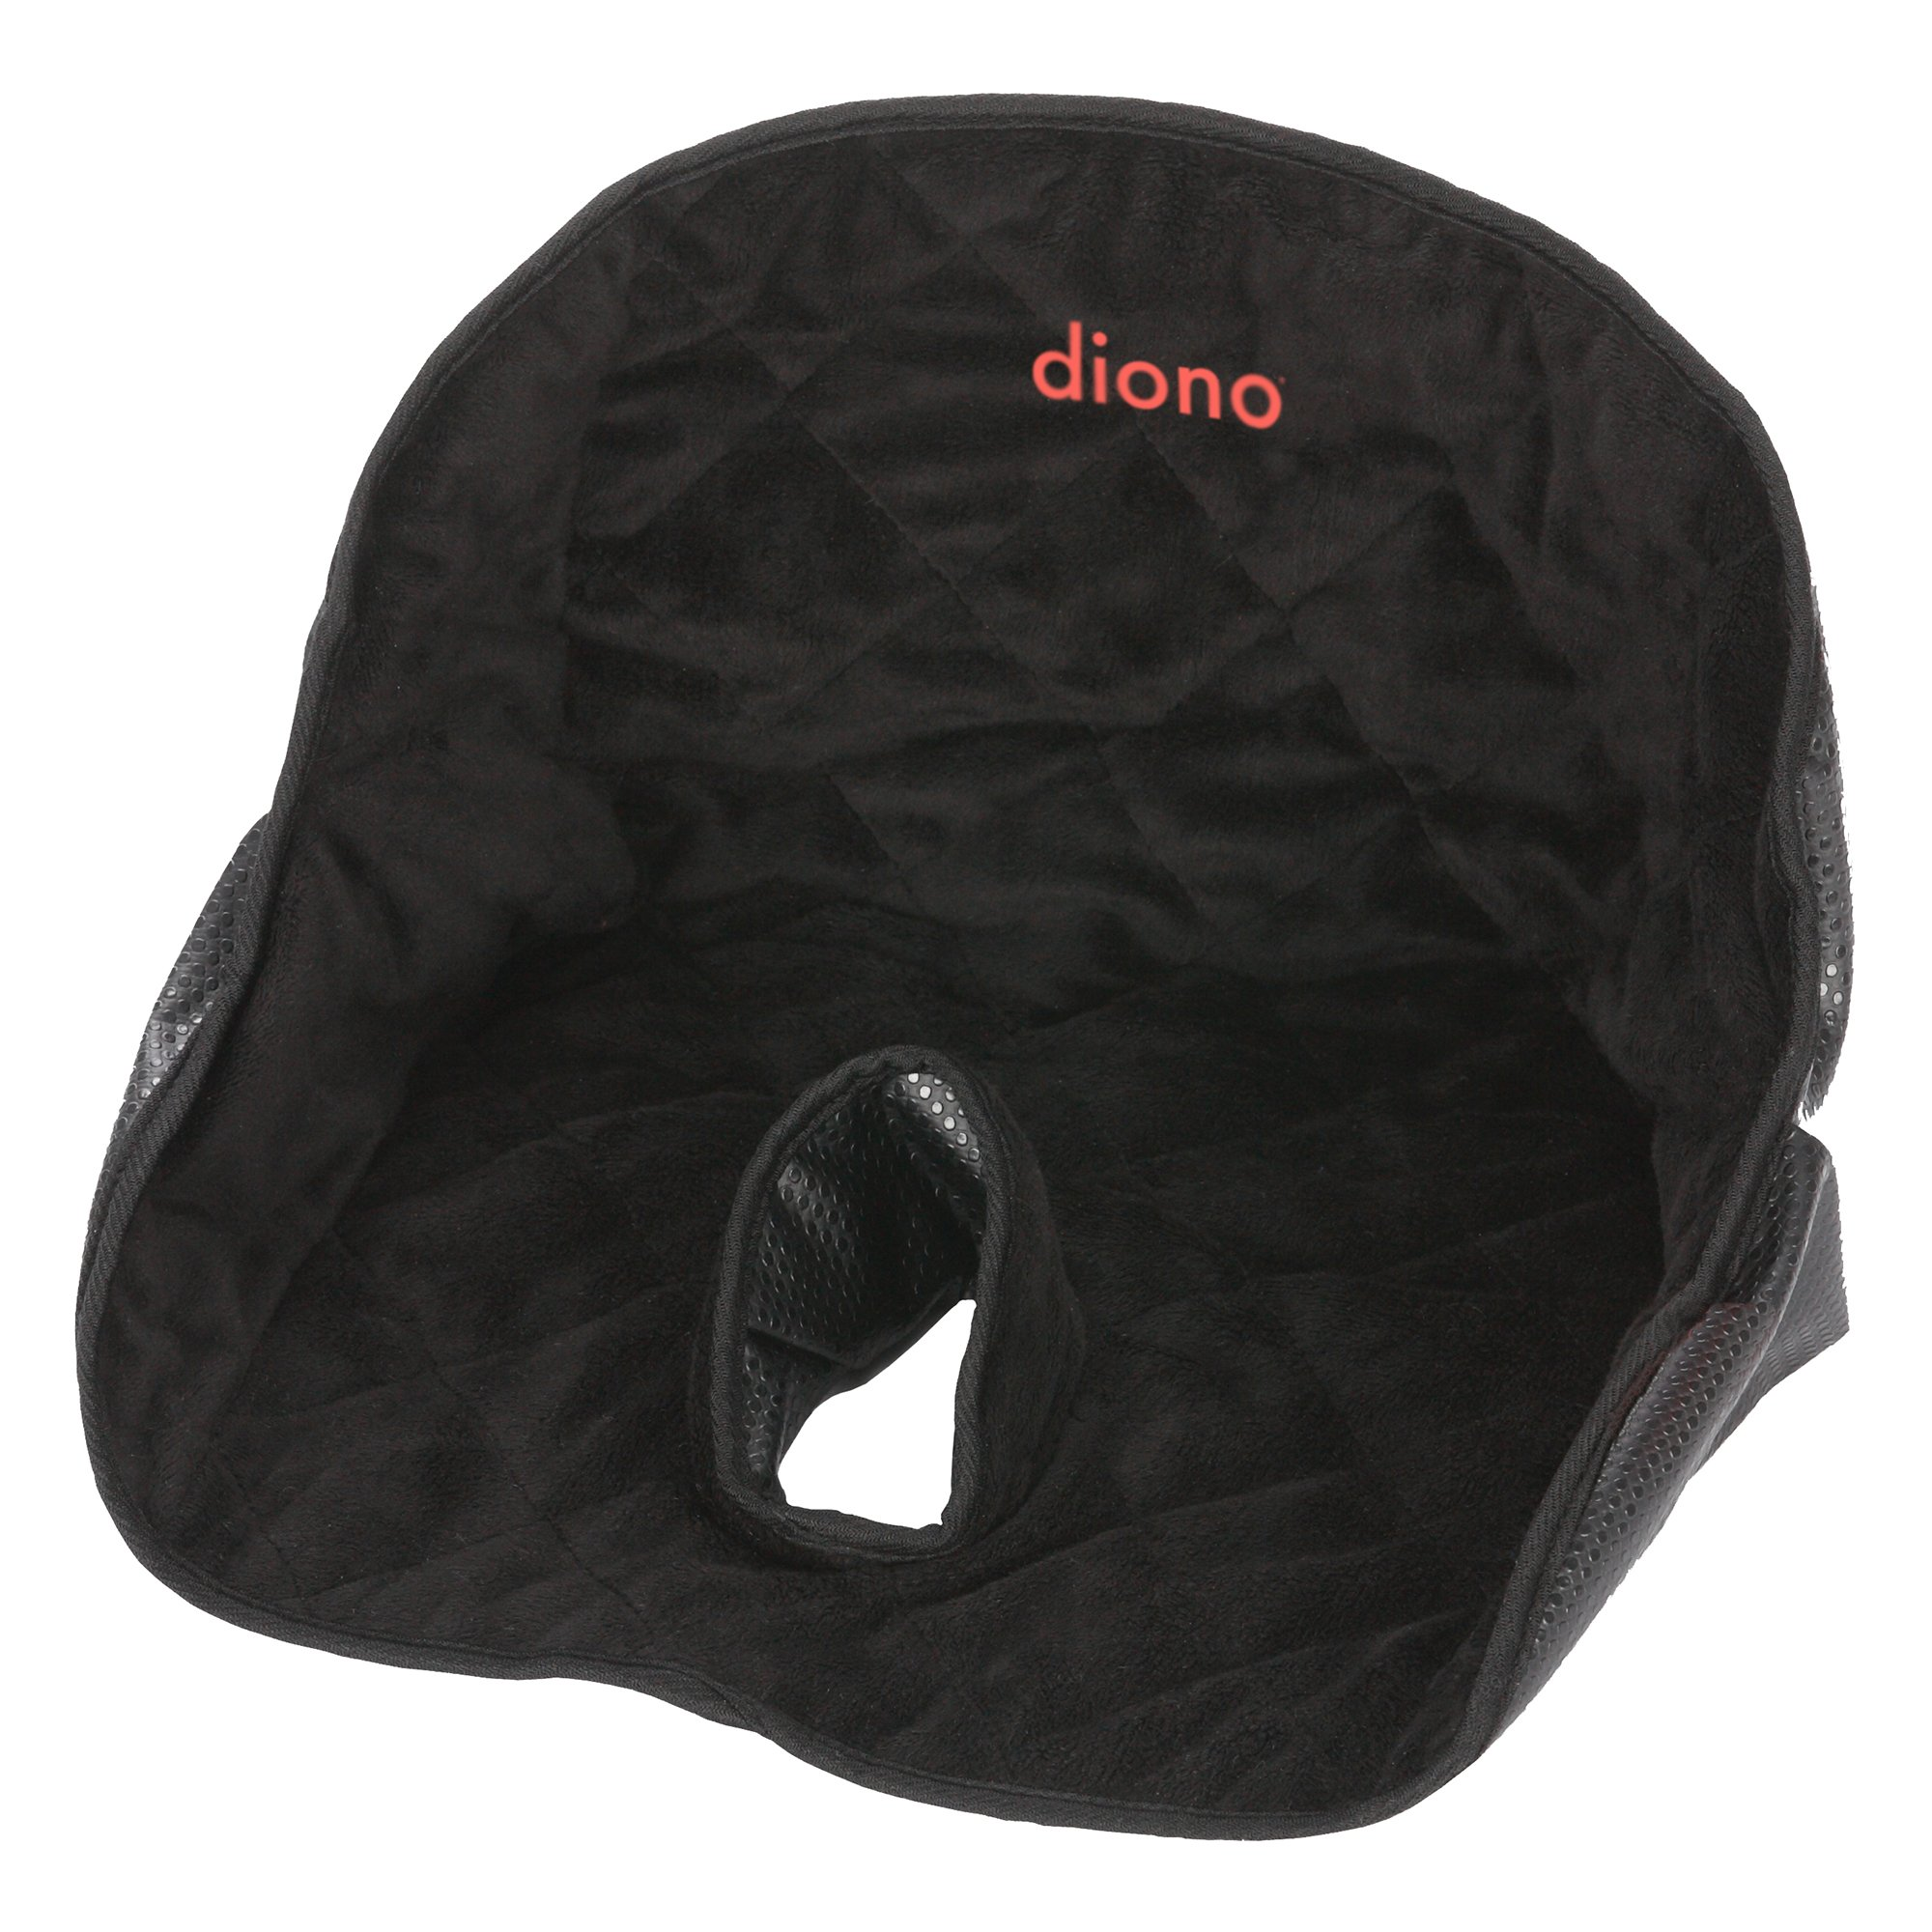 Diono Dry Seat Car Seat Protector, Black